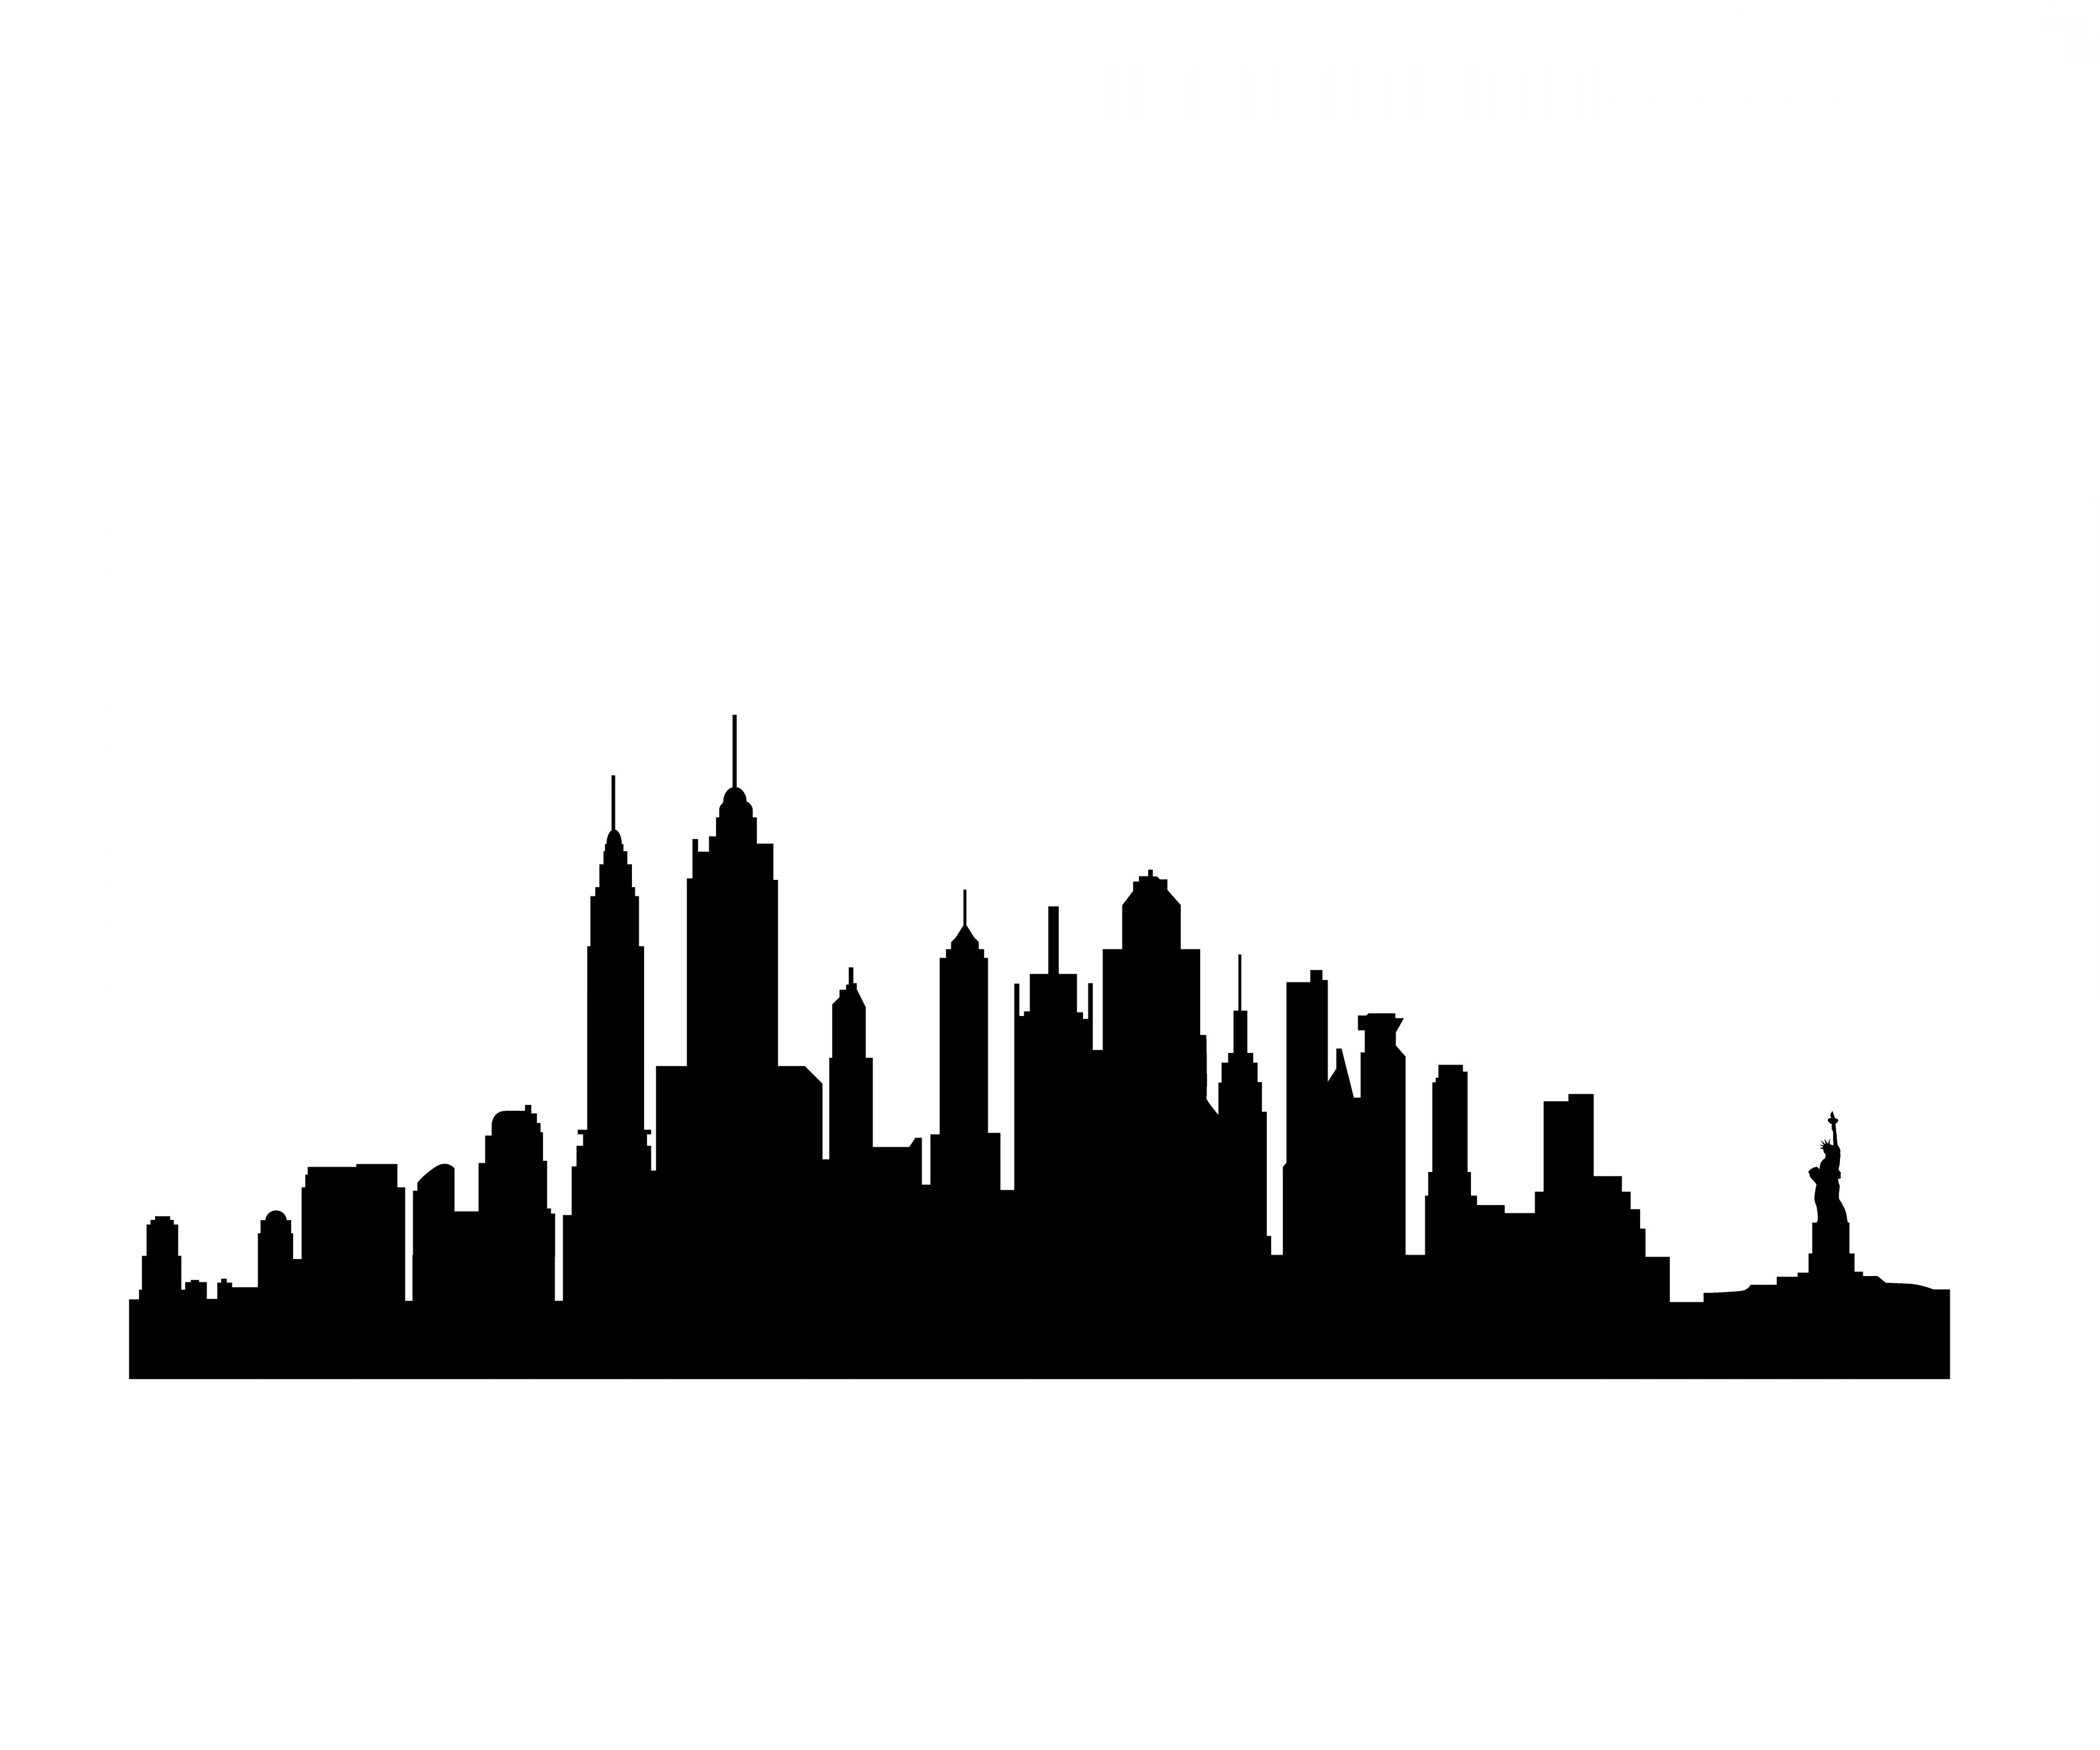 5184x4320 Cityscape Drawing Skyline For Free Download